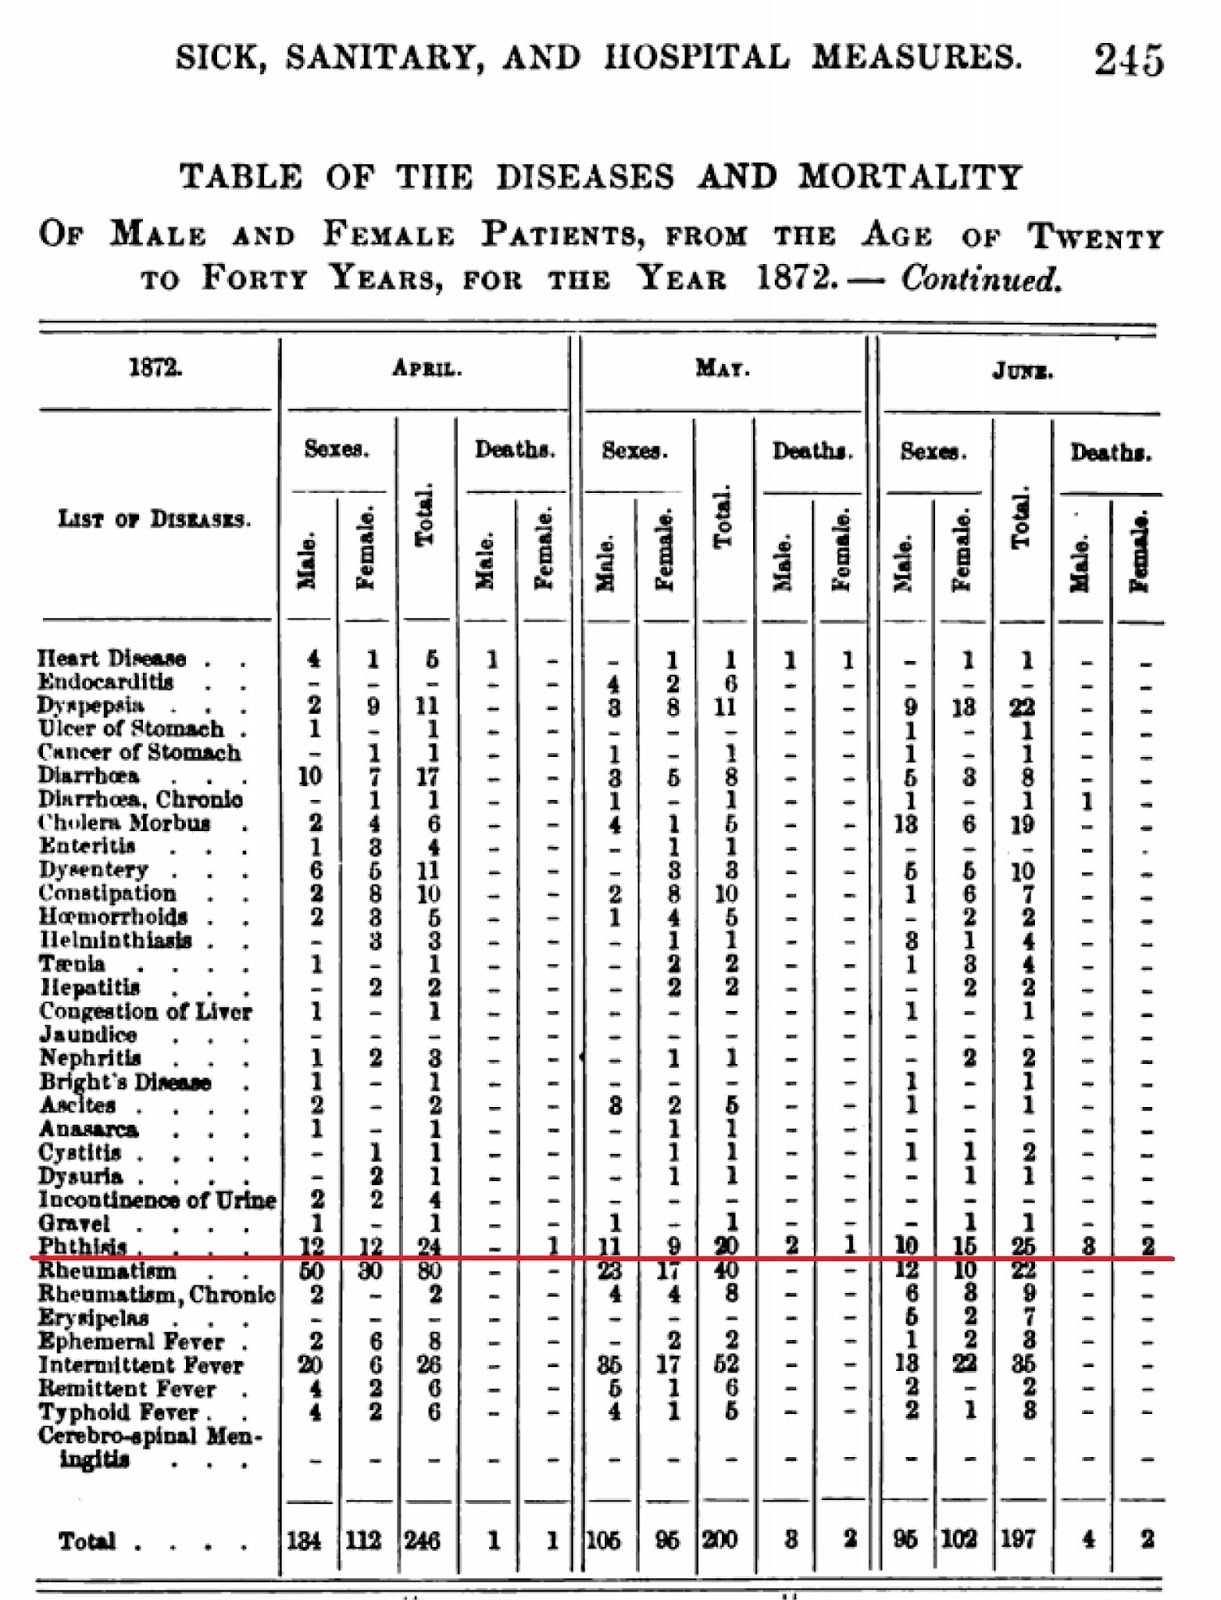 deaths during april may and june 1872 for persons 20 to 40 click to enlarge